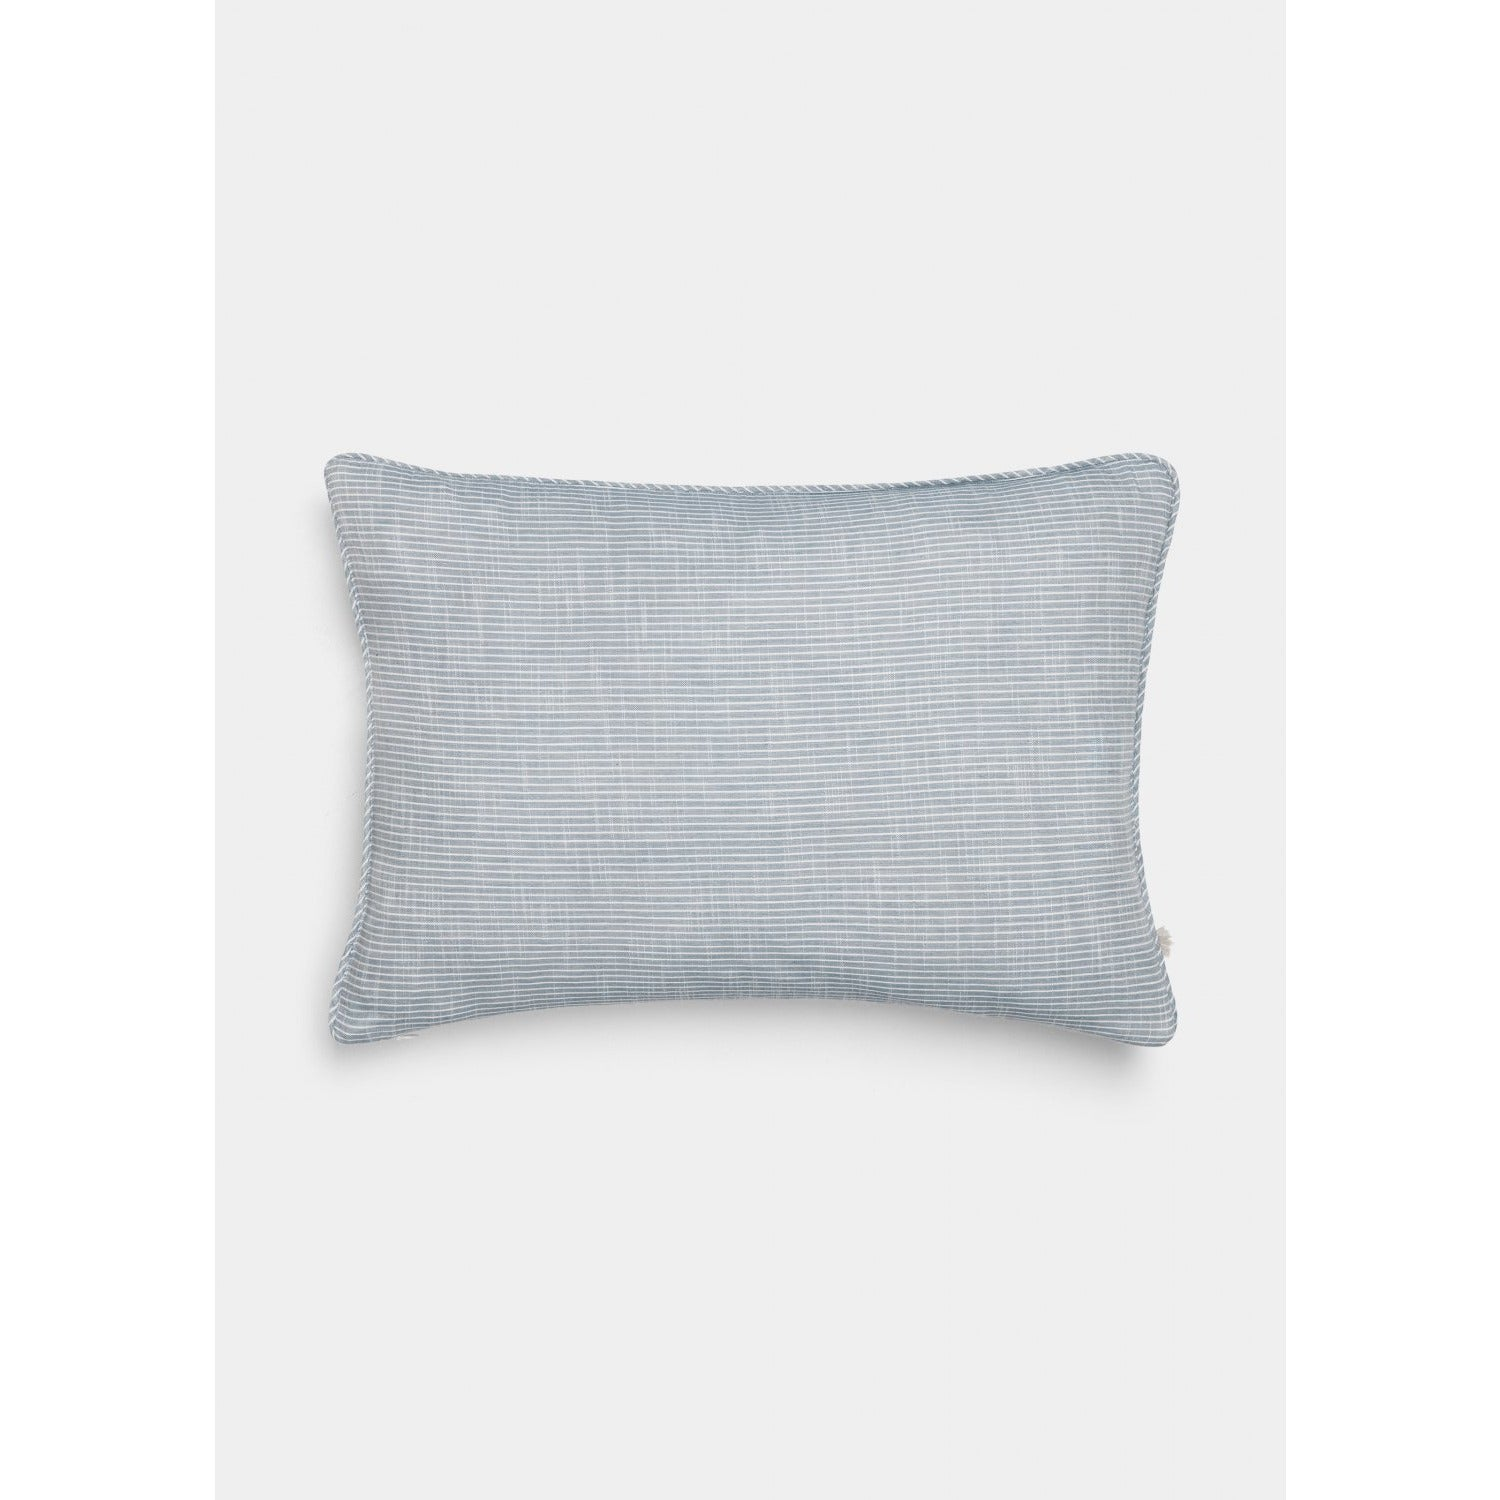 light blue striped pillow by designer aiayu